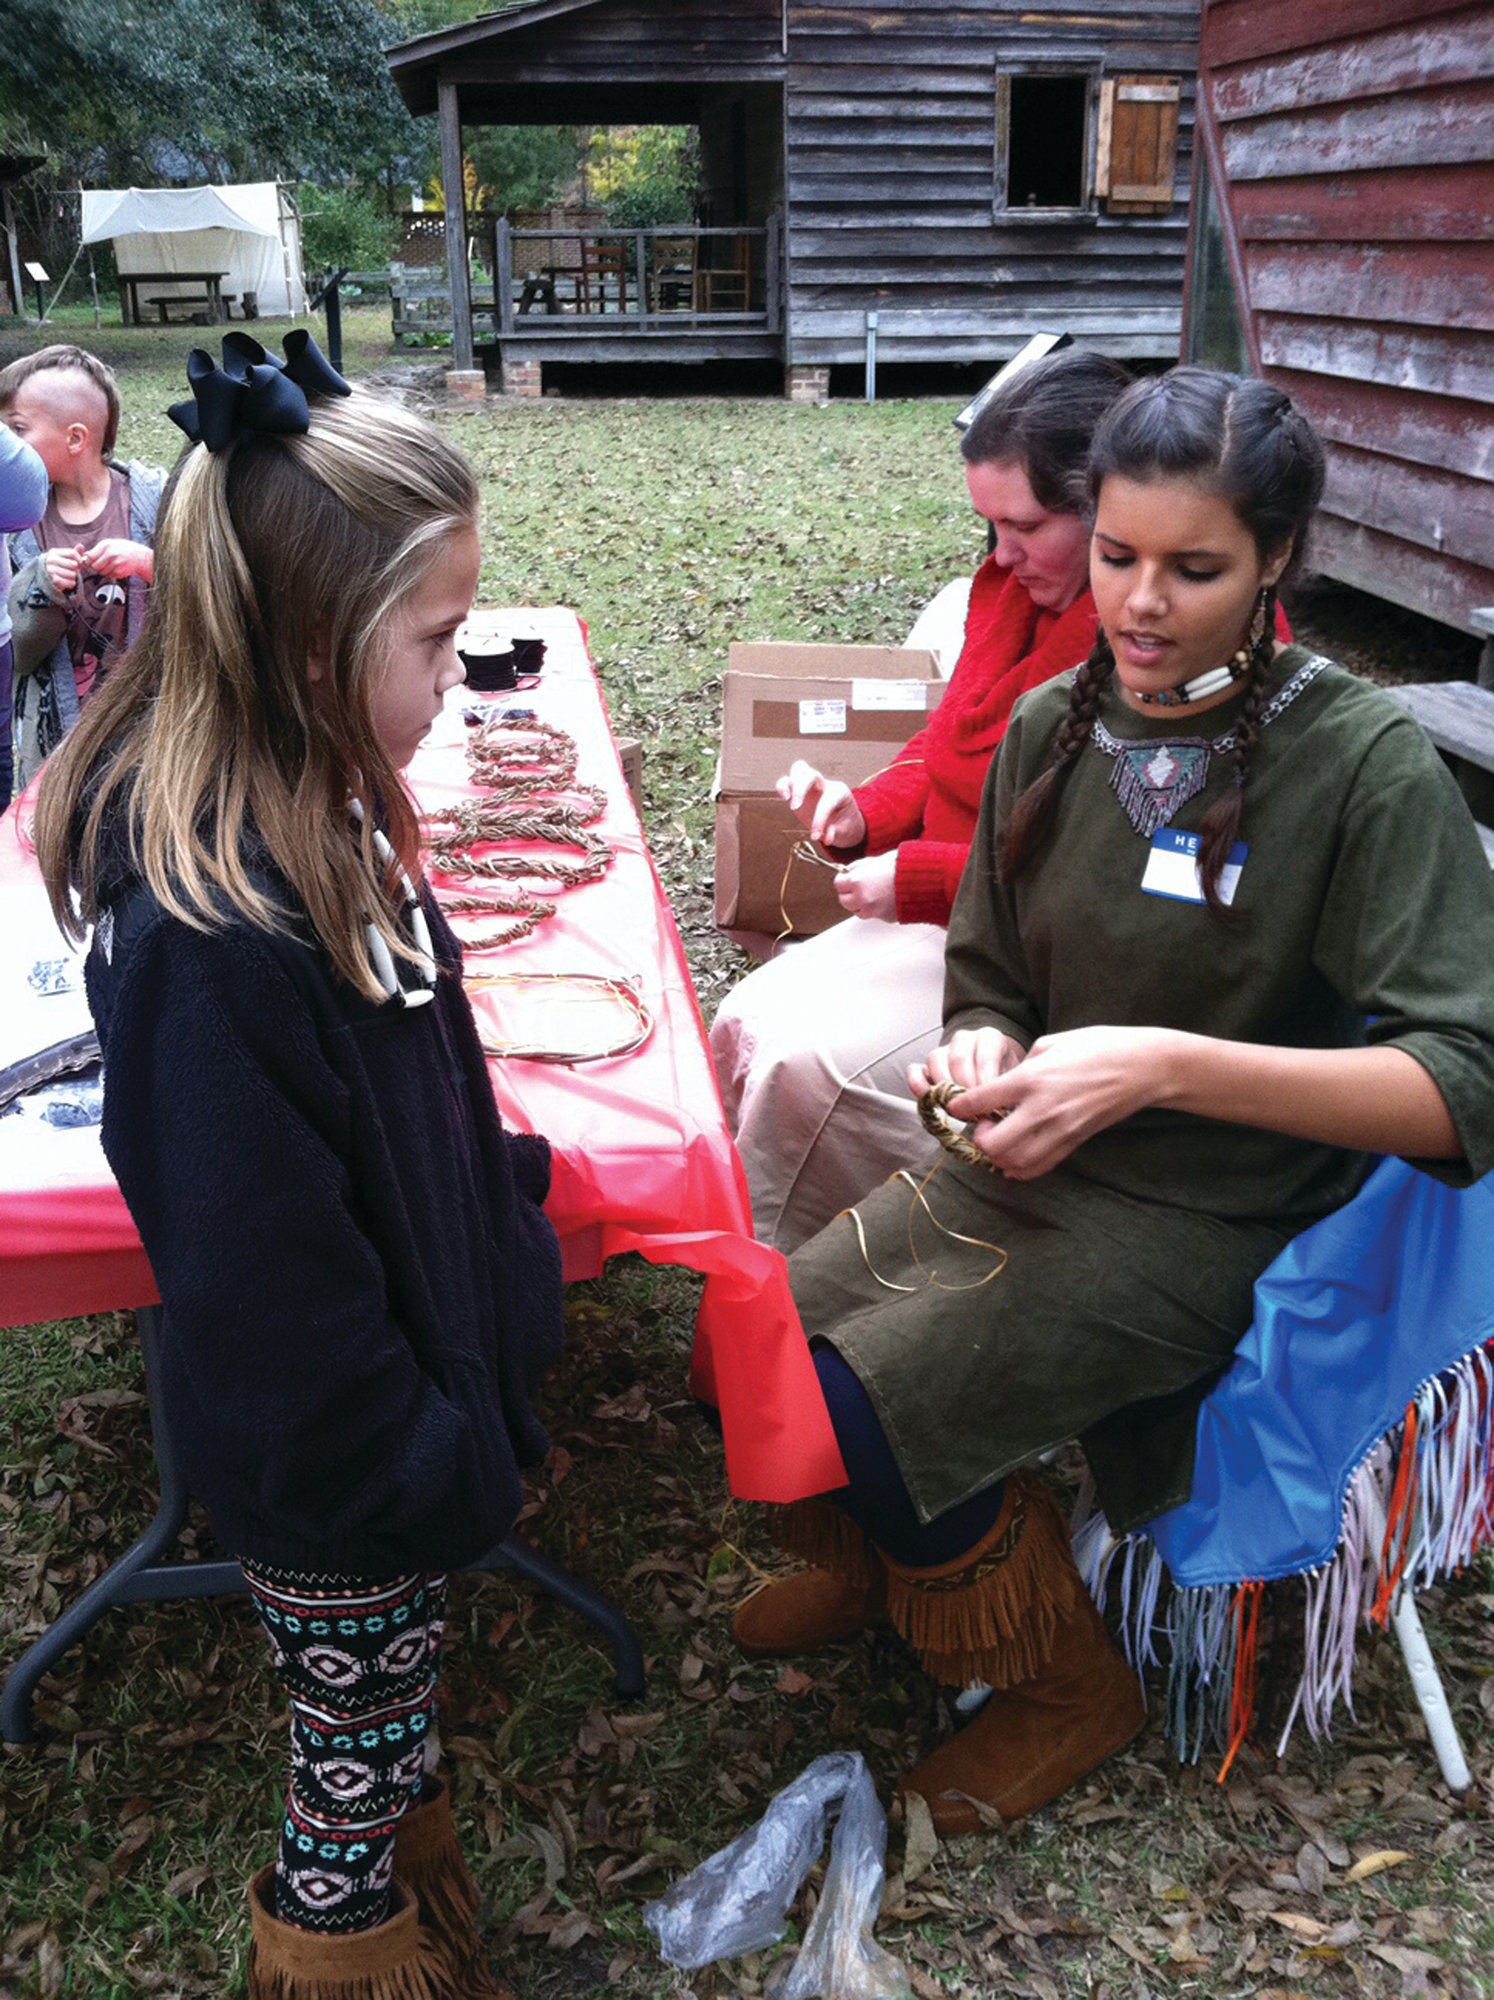 Karli Hudson helps a child make a dream catcher at a previous tribe event.